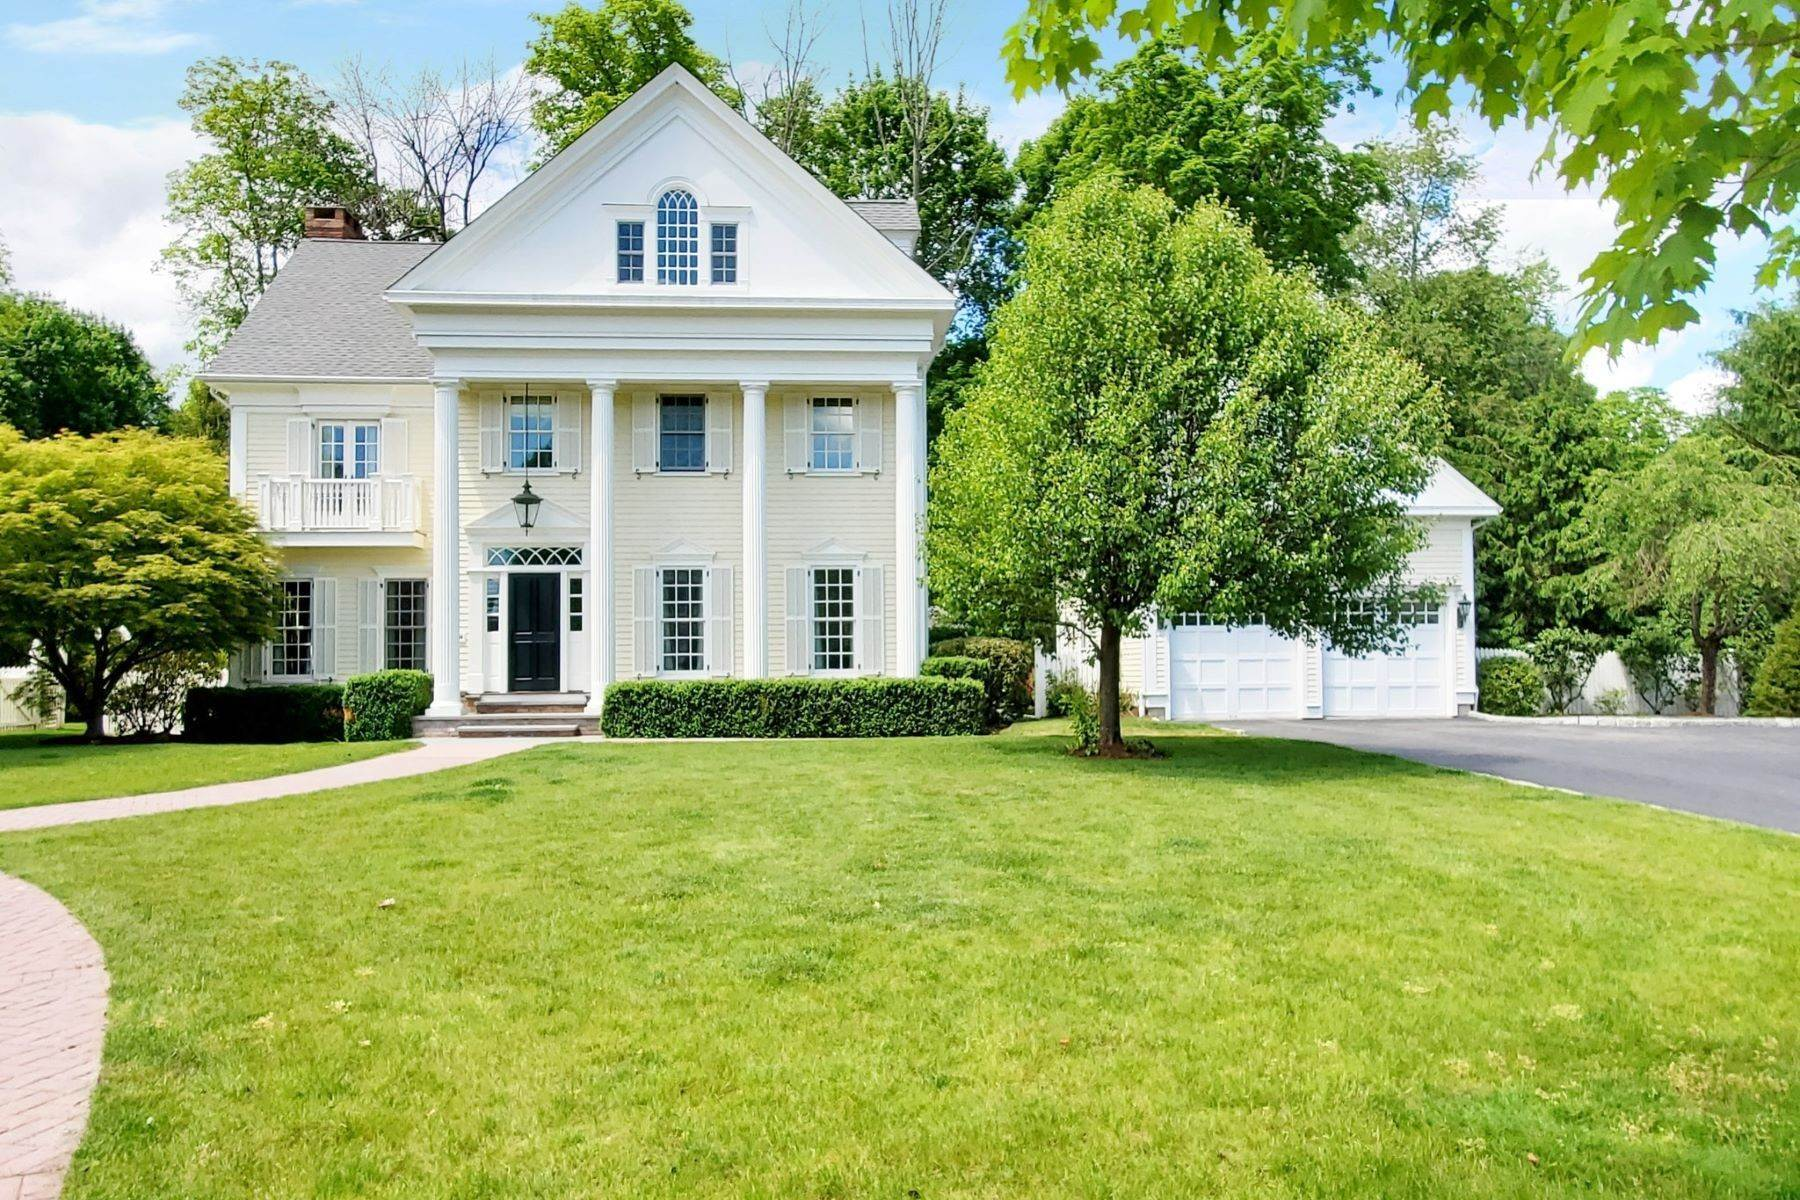 Single Family Homes for Sale at Exceptional Custom Home 547 Main Street Ridgefield, Connecticut 06877 United States